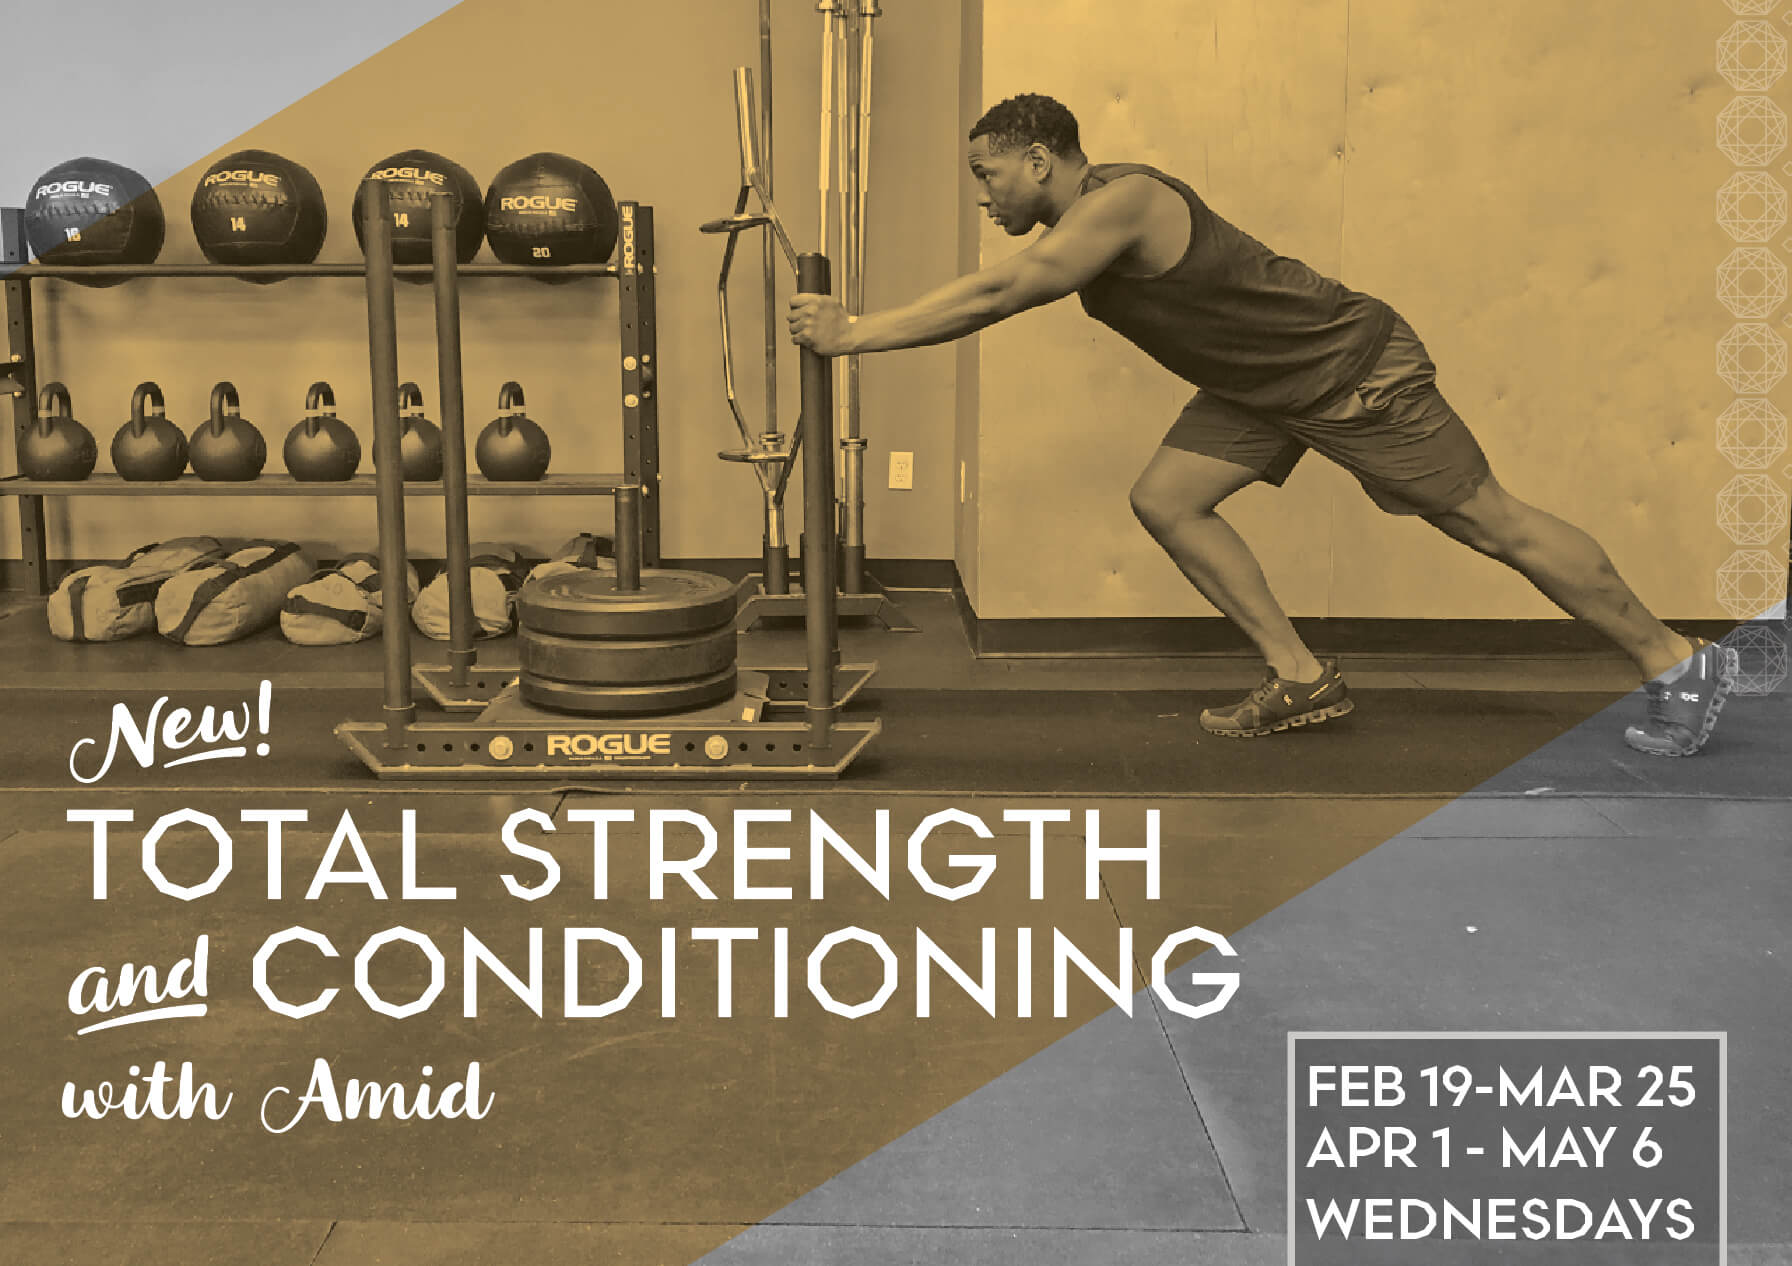 Total Strength and Conditioning